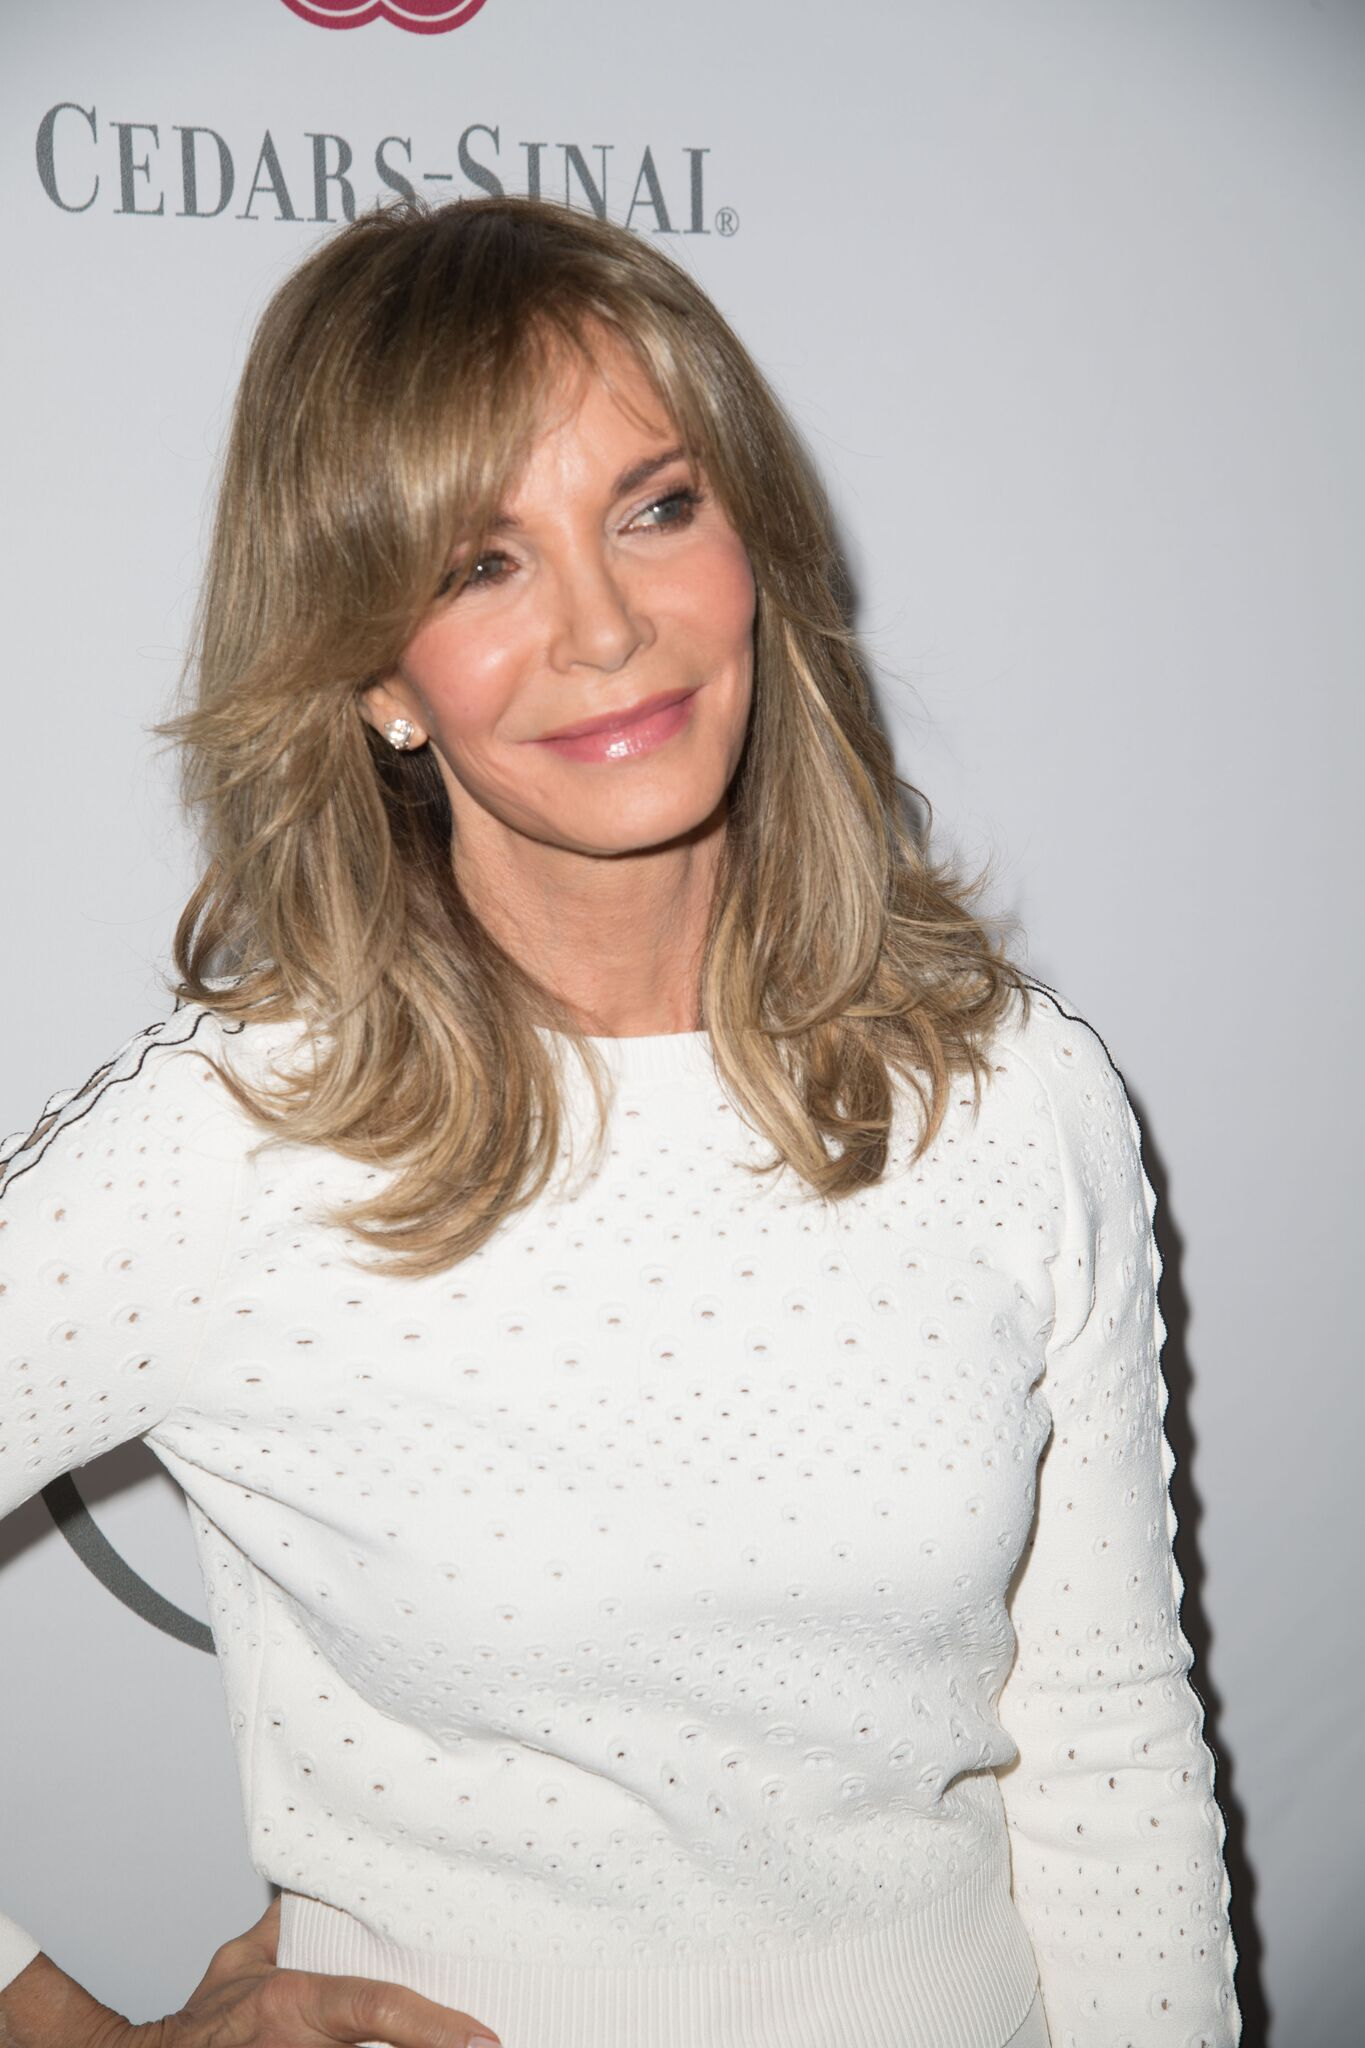 Jaclyn Smith attends the 2016 Women's Guild Cedars-Sinai Annual Spring Luncheon | Getty Images / Global Images Ukraine